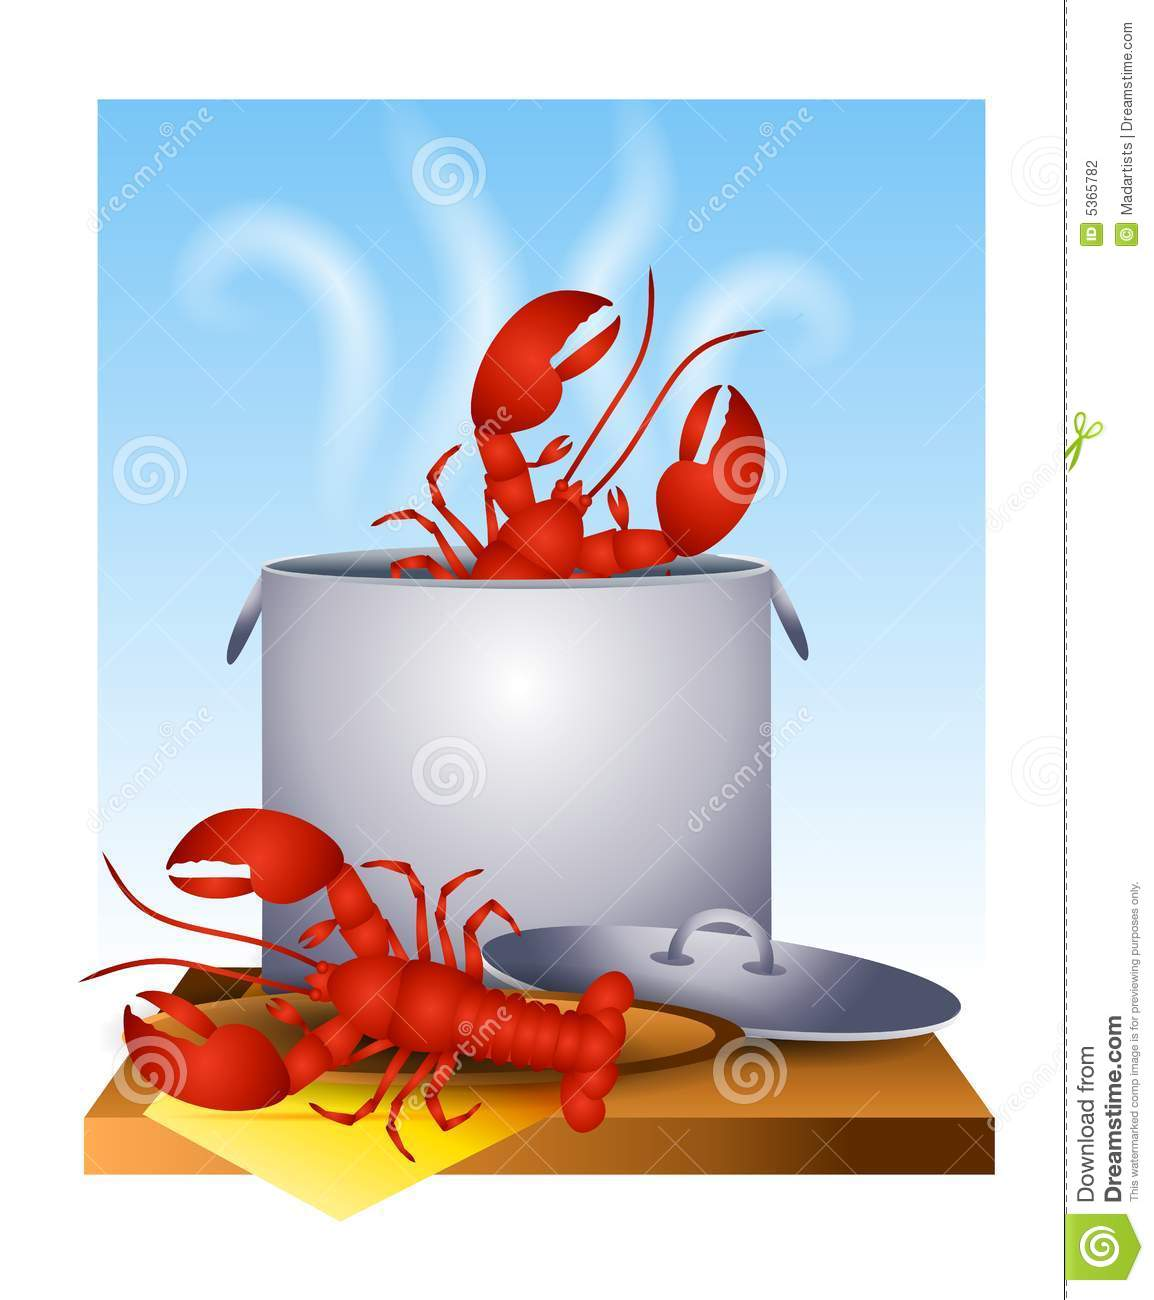 Fresh Cooked Lobster In The Pot Stock Photography - Image: 5365782